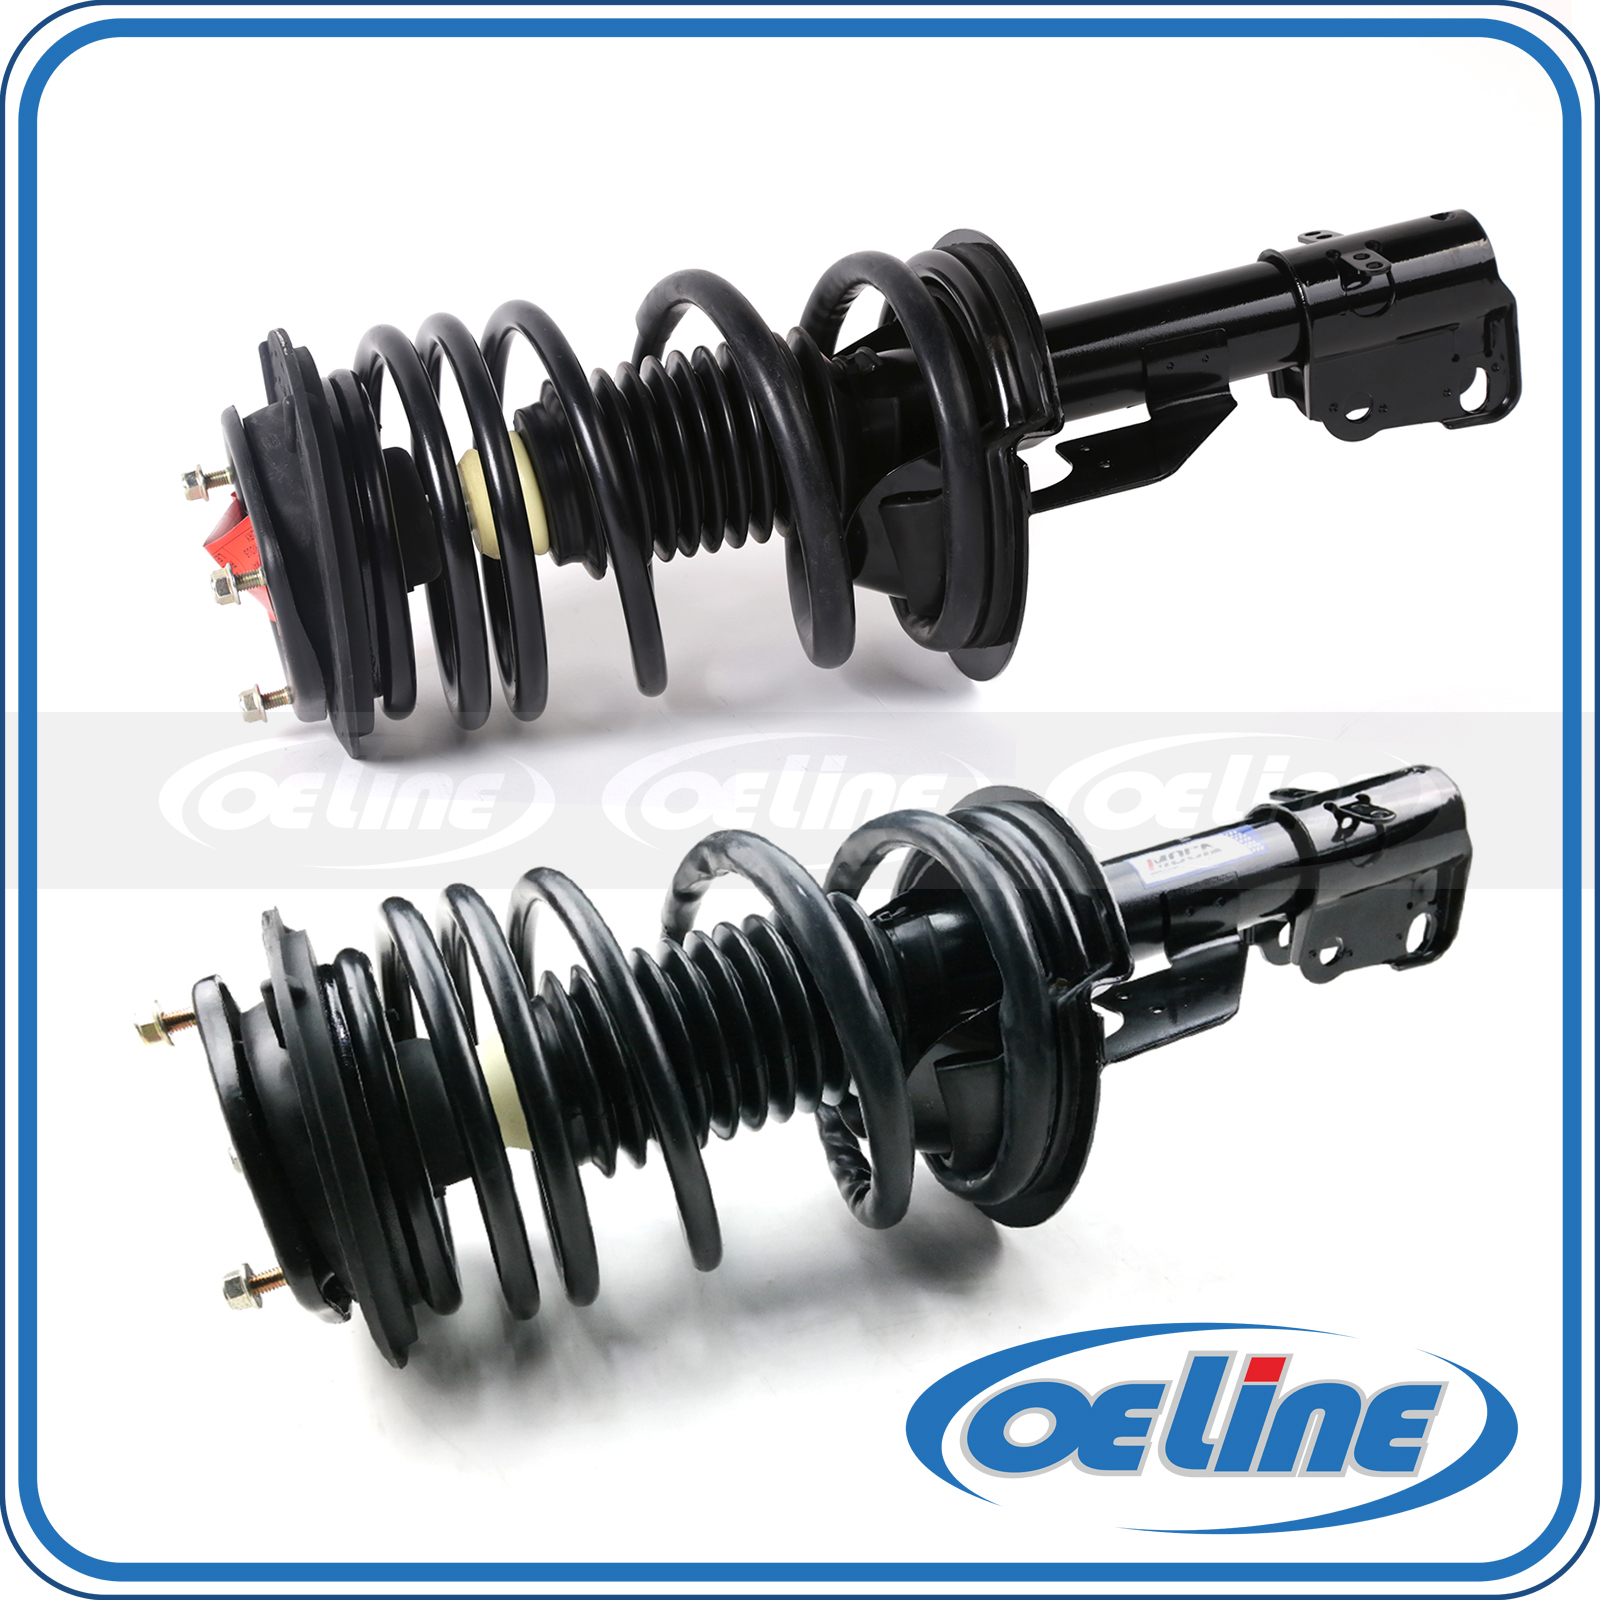 Front Quick Complete Struts /& Coil Spring Assemblies Compatible with 1993-1999 Nissan Altima Pair